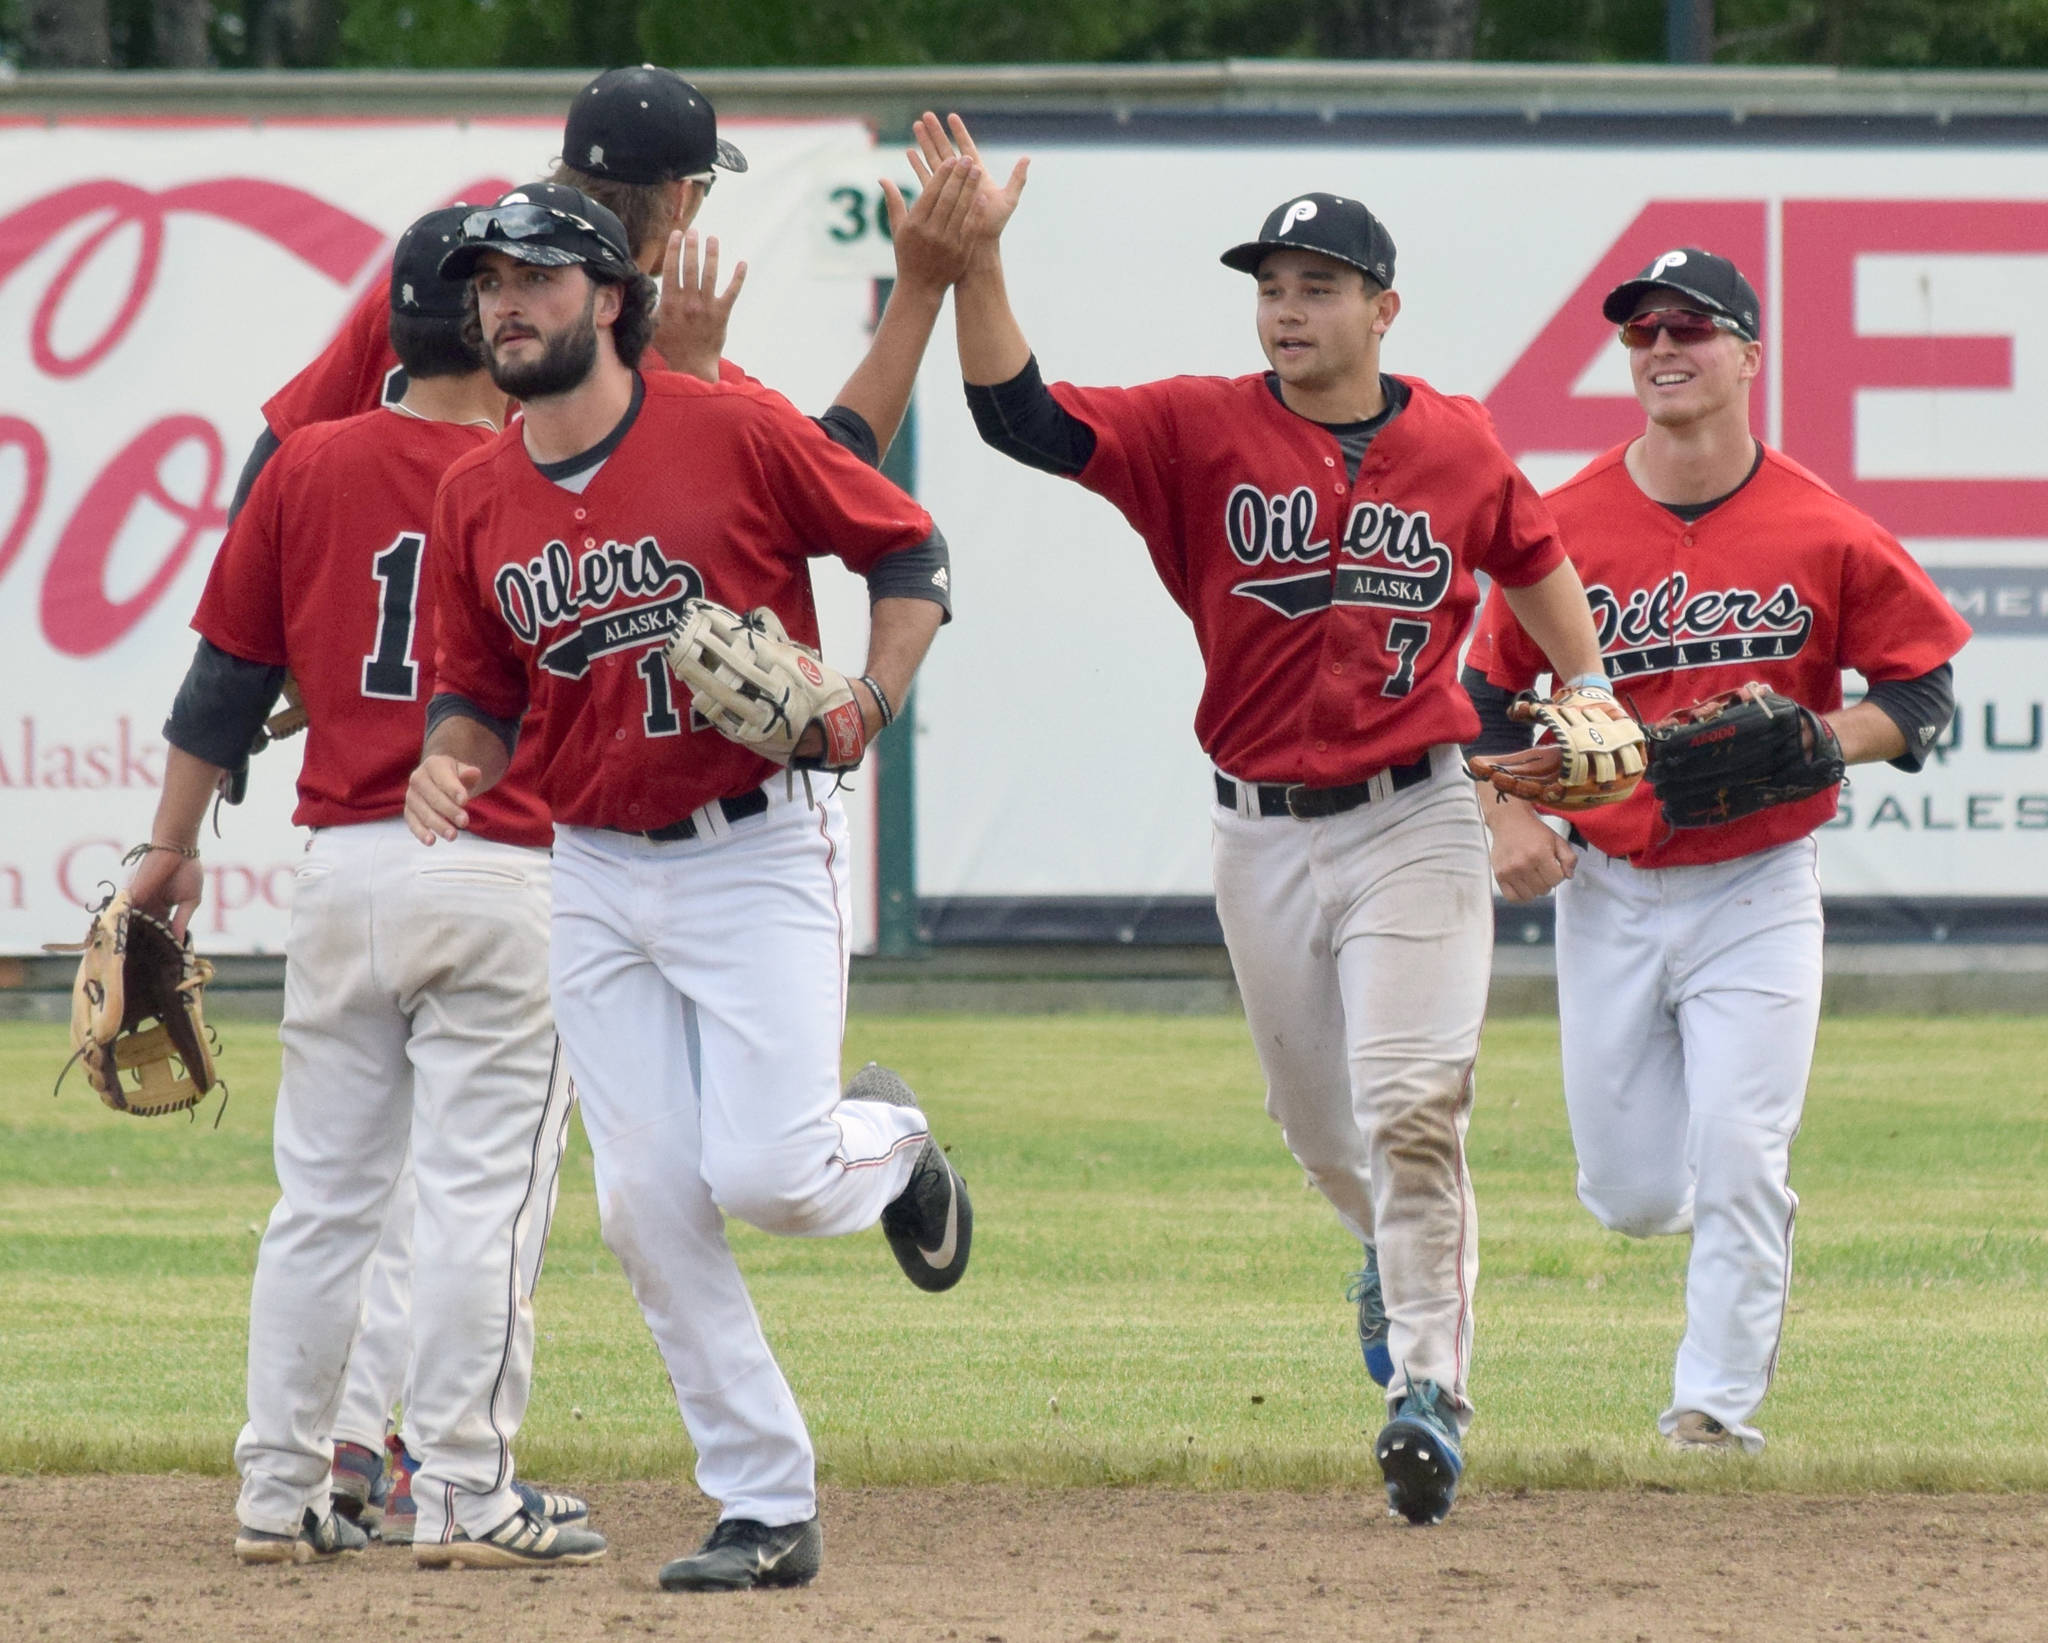 Oilers outfielders Calvin Farris, Camden Vasquez and Paul Steffensen receive congratulations after the Oilers defeated the Chugiak-Eagle River Chinooks on Sunday, June 16, 2019, at Coral Seymour Memorial Park in Kenai, Alaska.